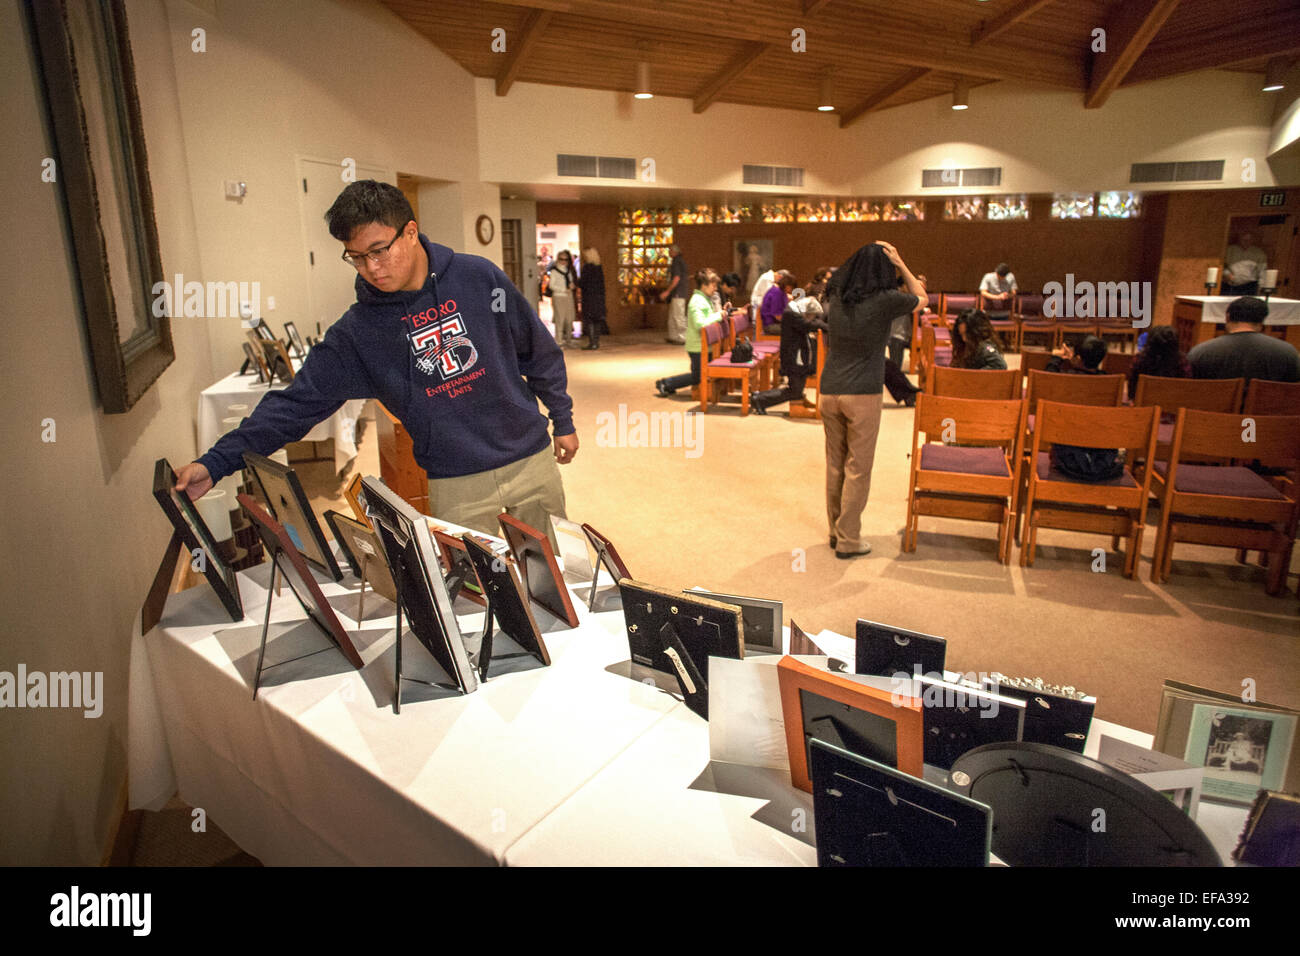 After an All Souls Day mass at St. Timothy's Catholic Church, Laguna Niguel, CA, an Asian American teenager looks Stock Photo